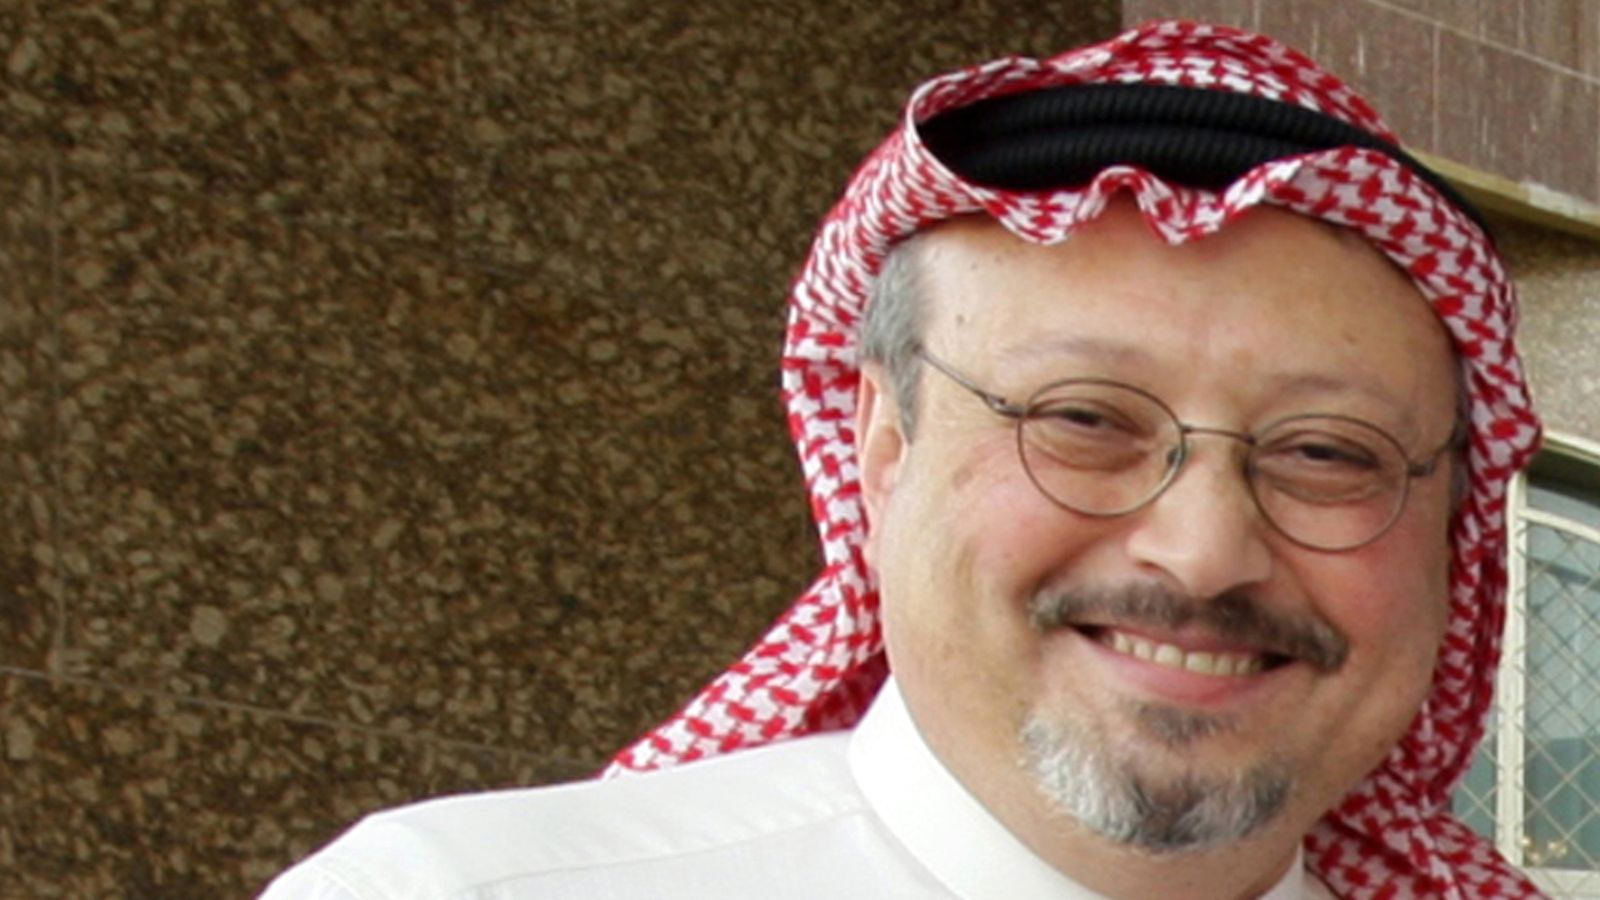 JAMAL KHASHOGGI (sumber foto: https://news.sky.com/story/missing-journalist-jamal-khashoggi-audio-recording-made-of-murder-11527880)